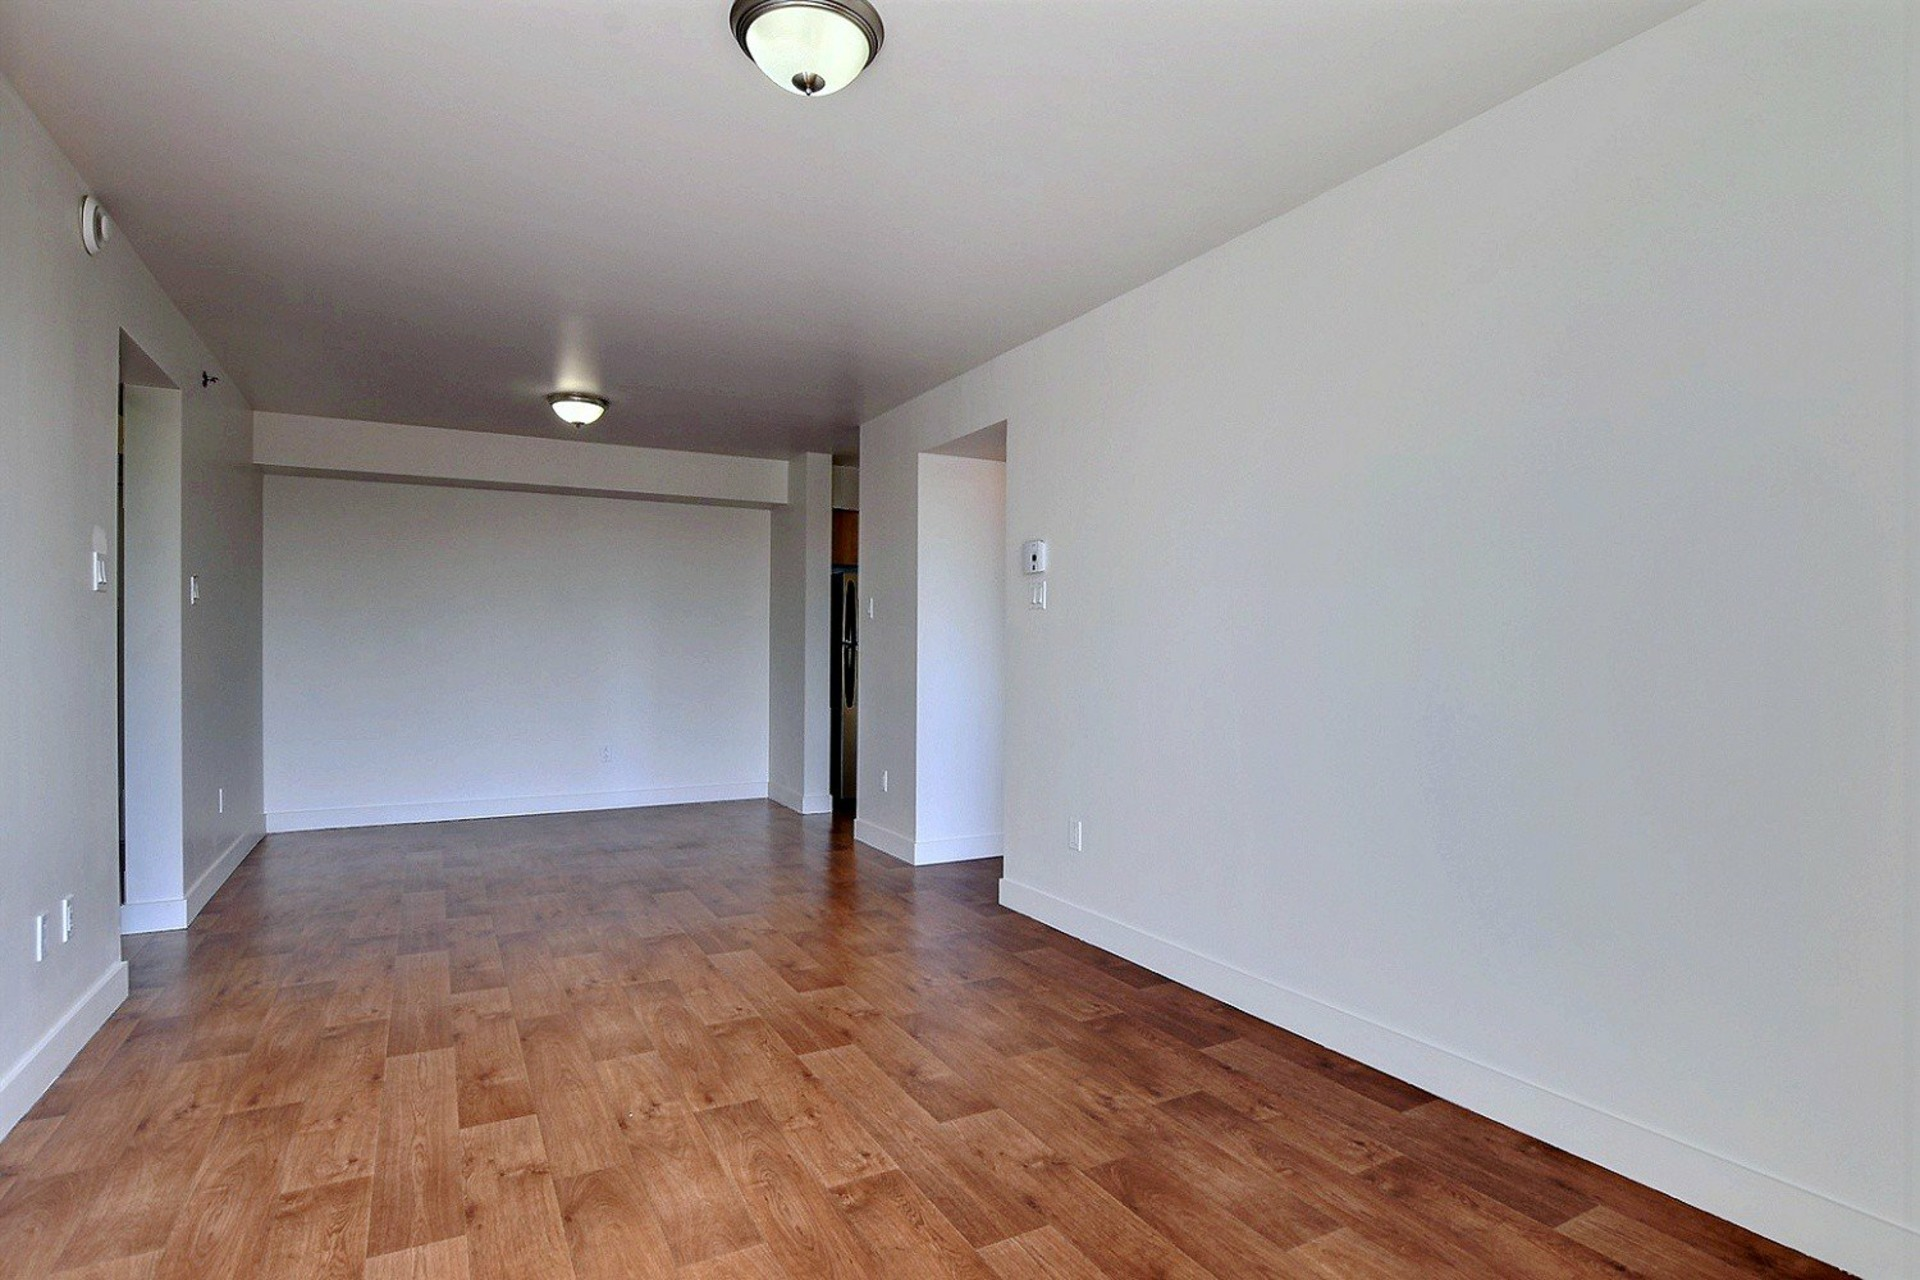 image 5 - Apartment For rent Brossard - 7 rooms